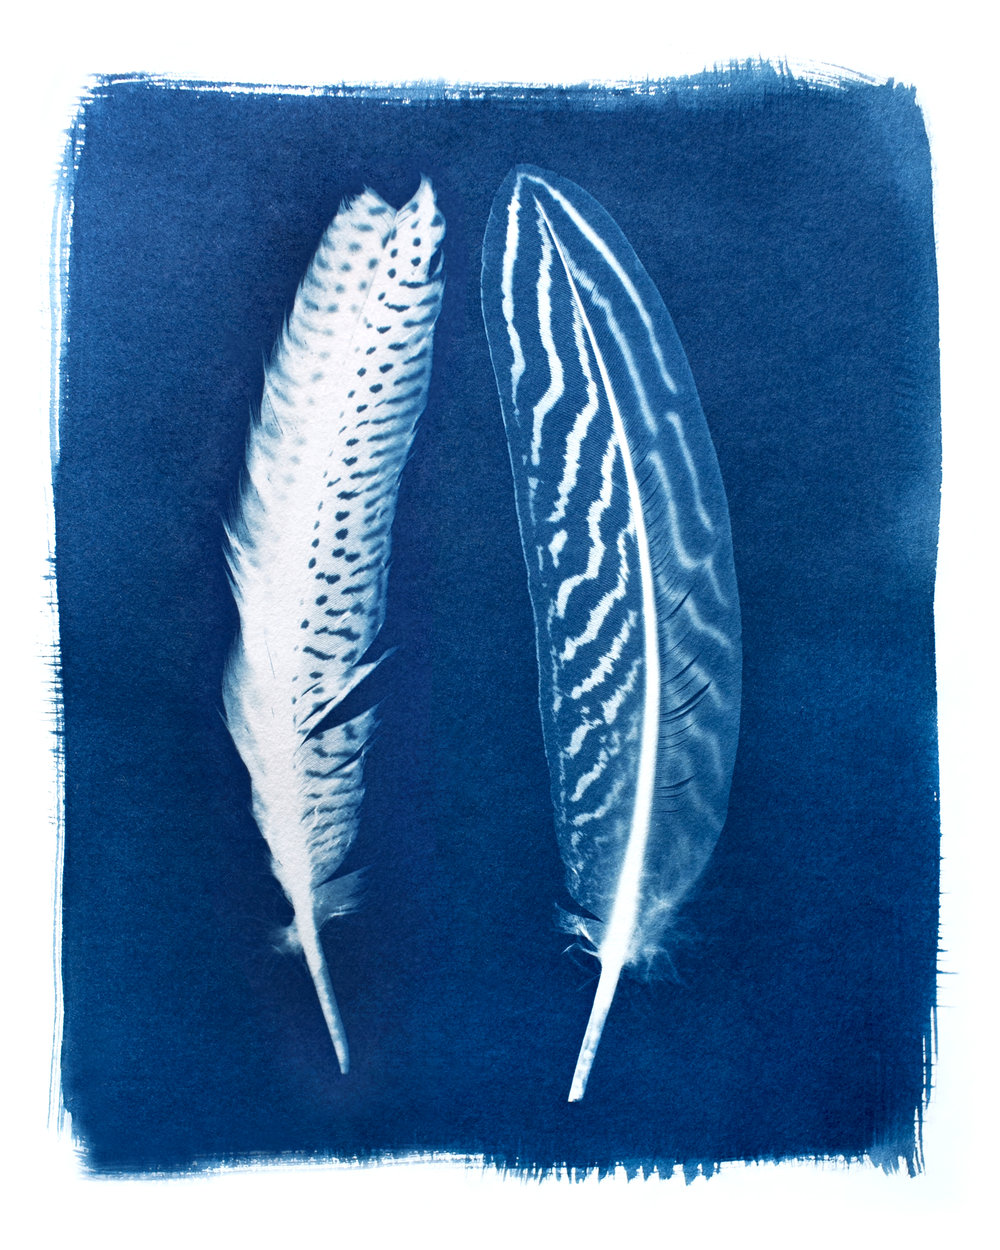 The reproduction of the original cyanotype with two feathers.